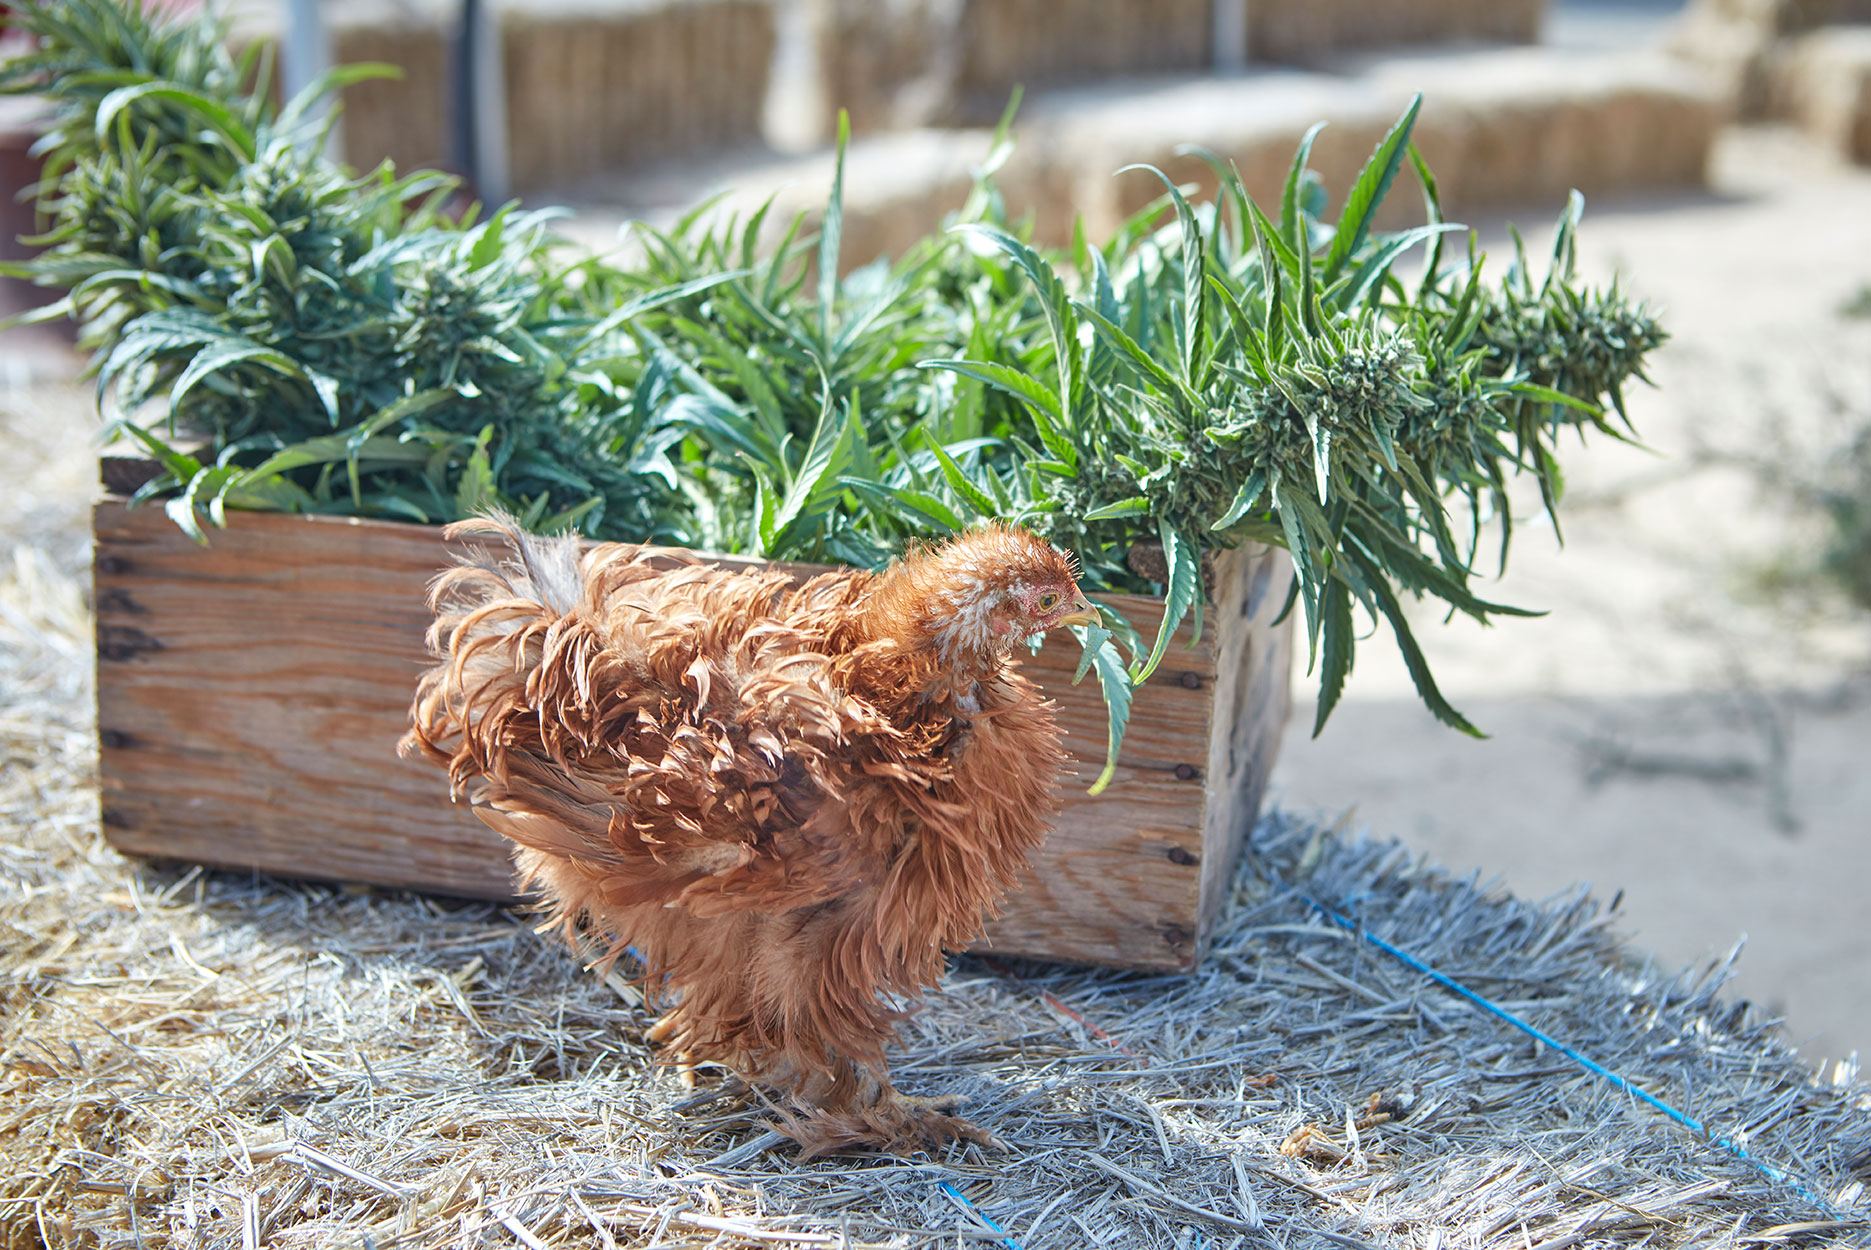 a chicken stands next to harvested cannabis plants